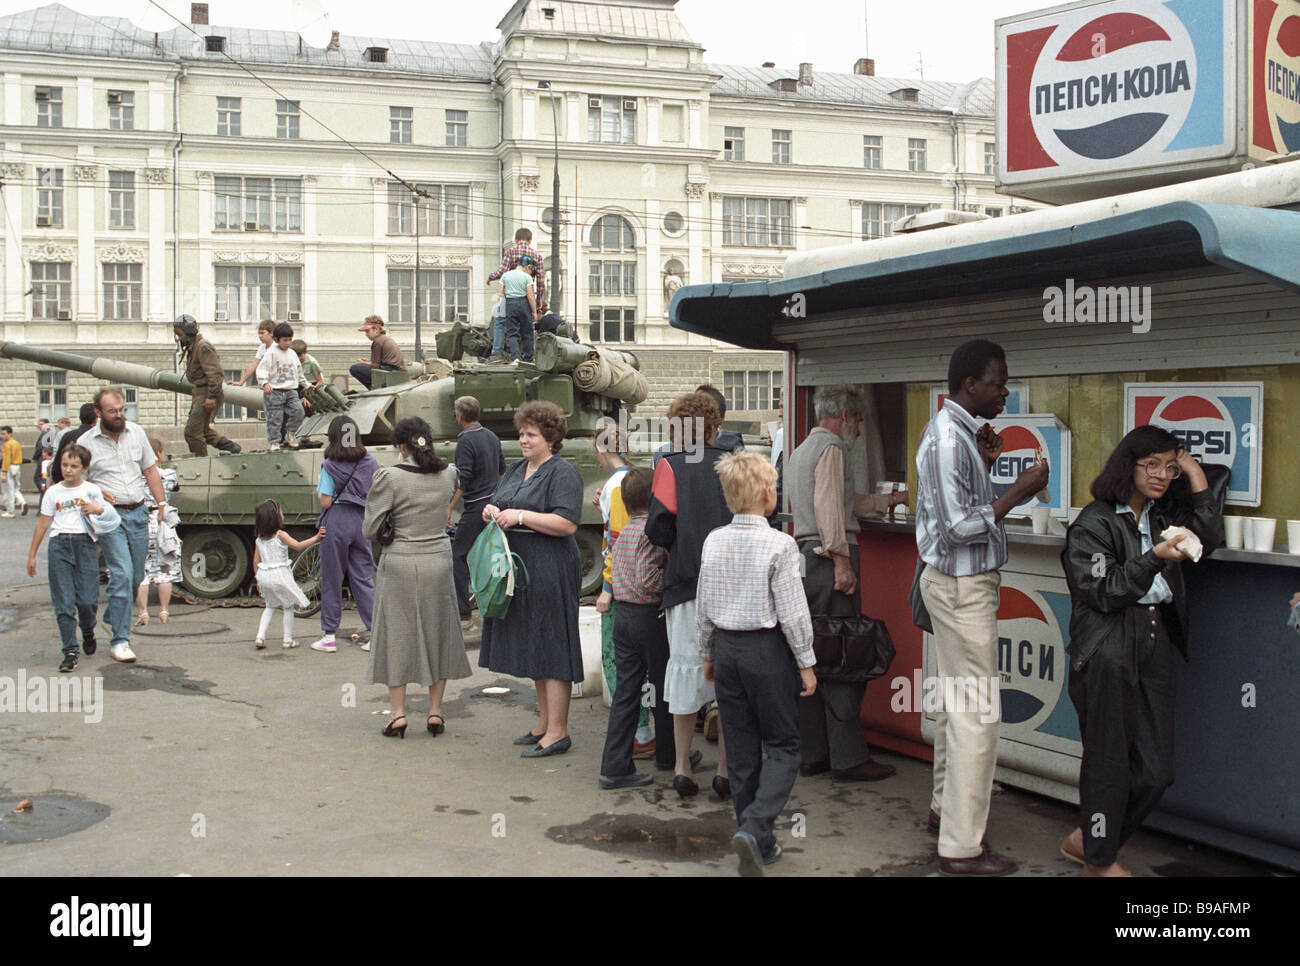 a-tank-in-one-of-moscow-streets-during-the-august-1991-coup-B9AFMP.jpg